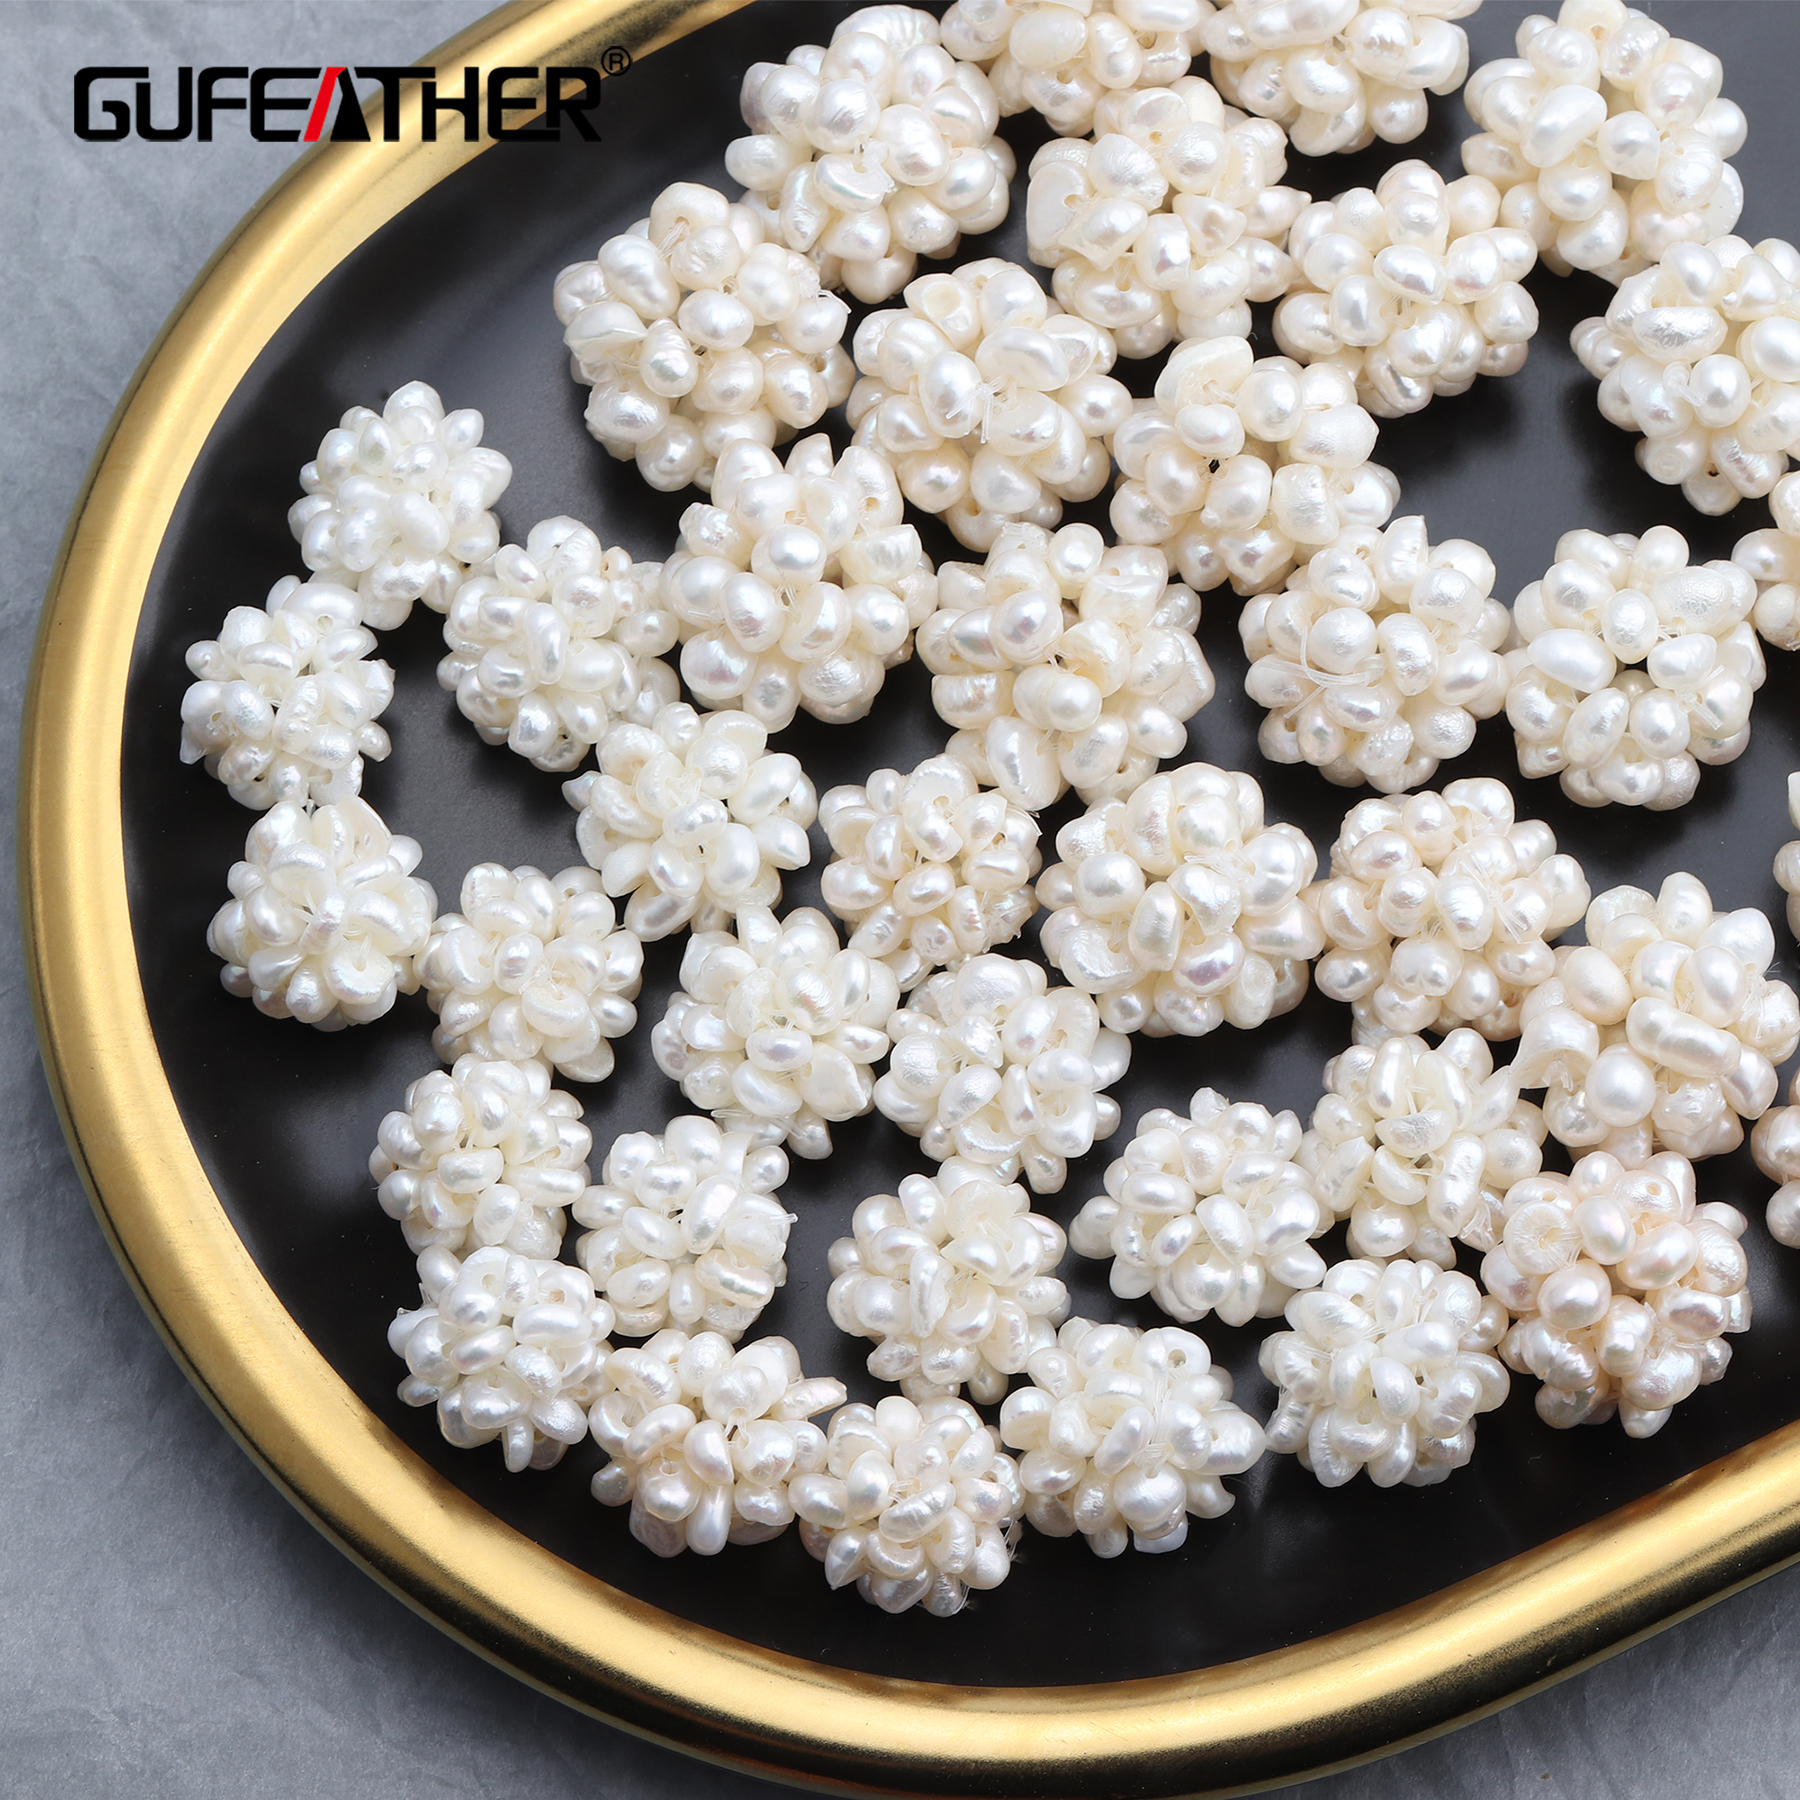 GUFEATHER M402,jewelry Accessories,ball Pendant,jewelry Findings,diy Beads,handmade,charms,jewelry Making,diy Earrings,10pcs/lot